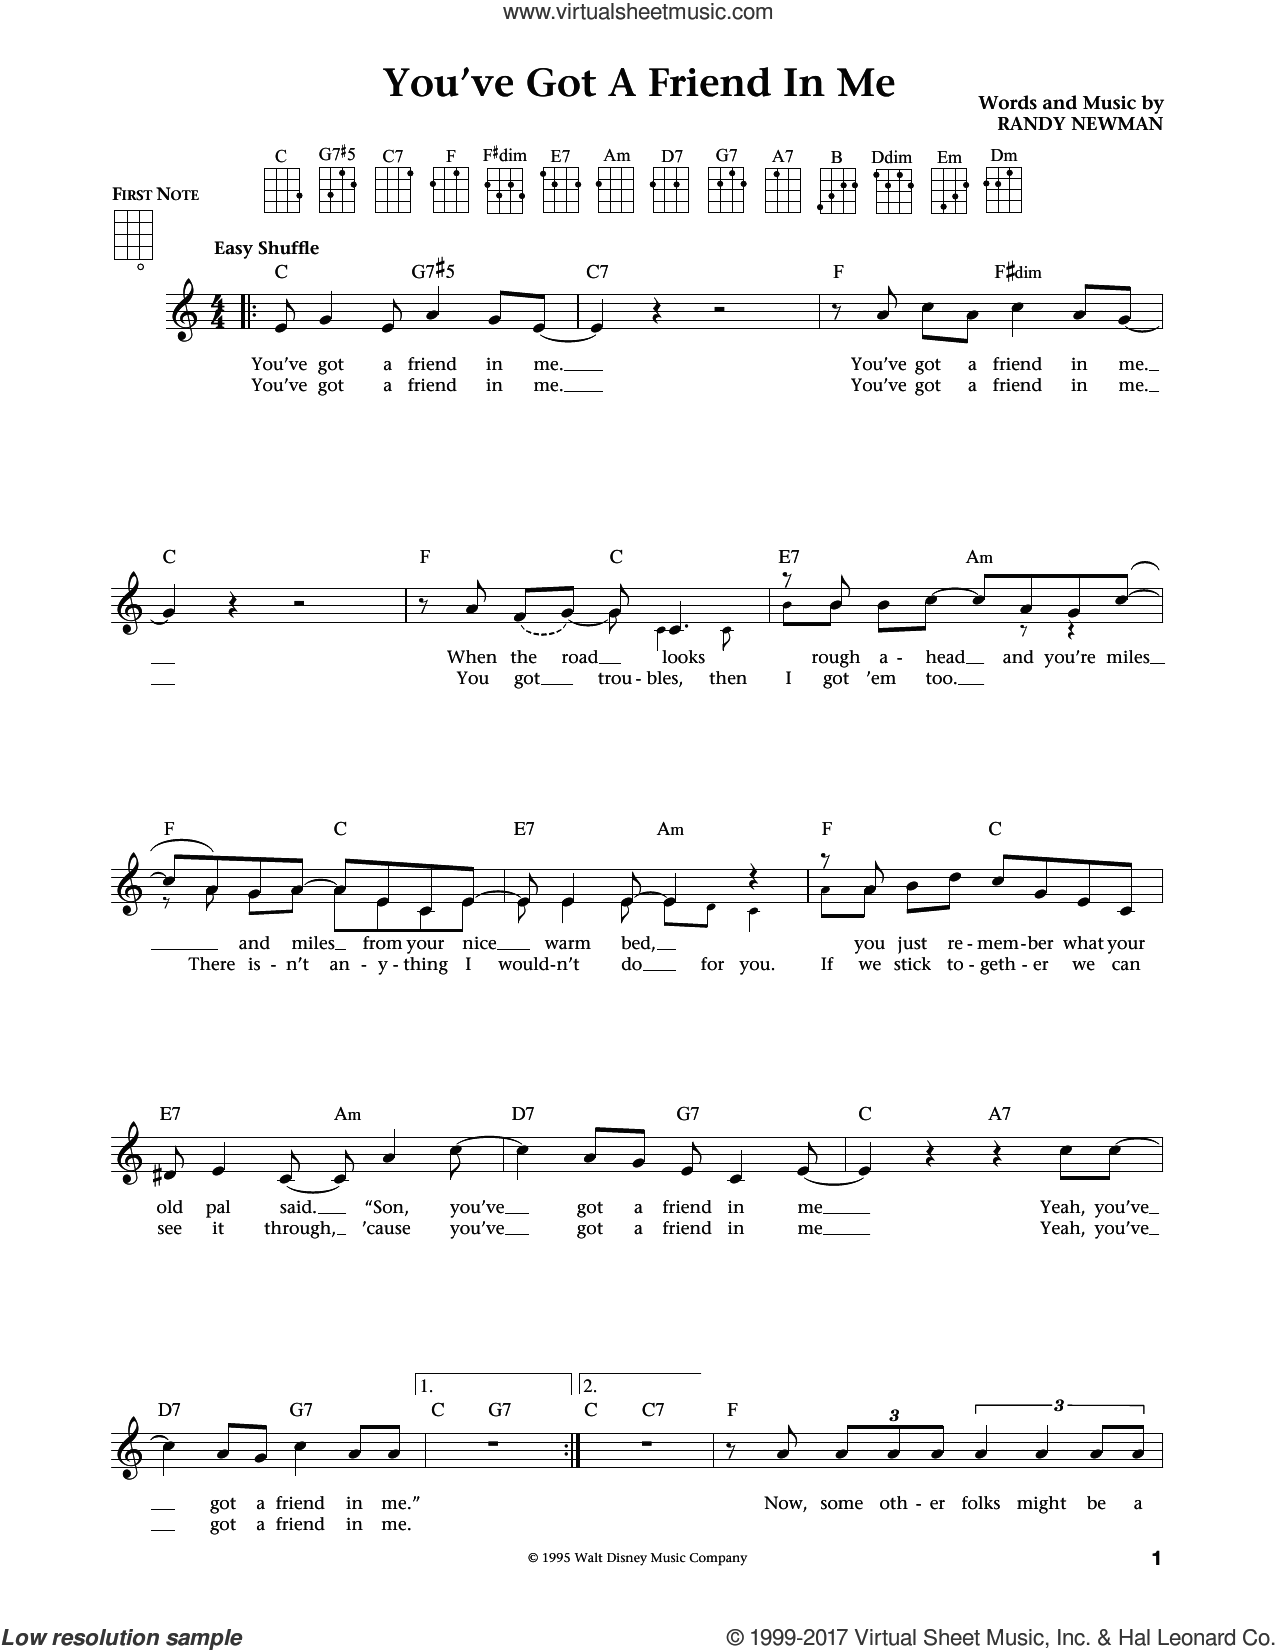 You've Got A Friend In Me (from Toy Story) (arr. Liz and Jim Beloff) sheet music for ukulele by Randy Newman, Jim Beloff and Liz Beloff, intermediate skill level